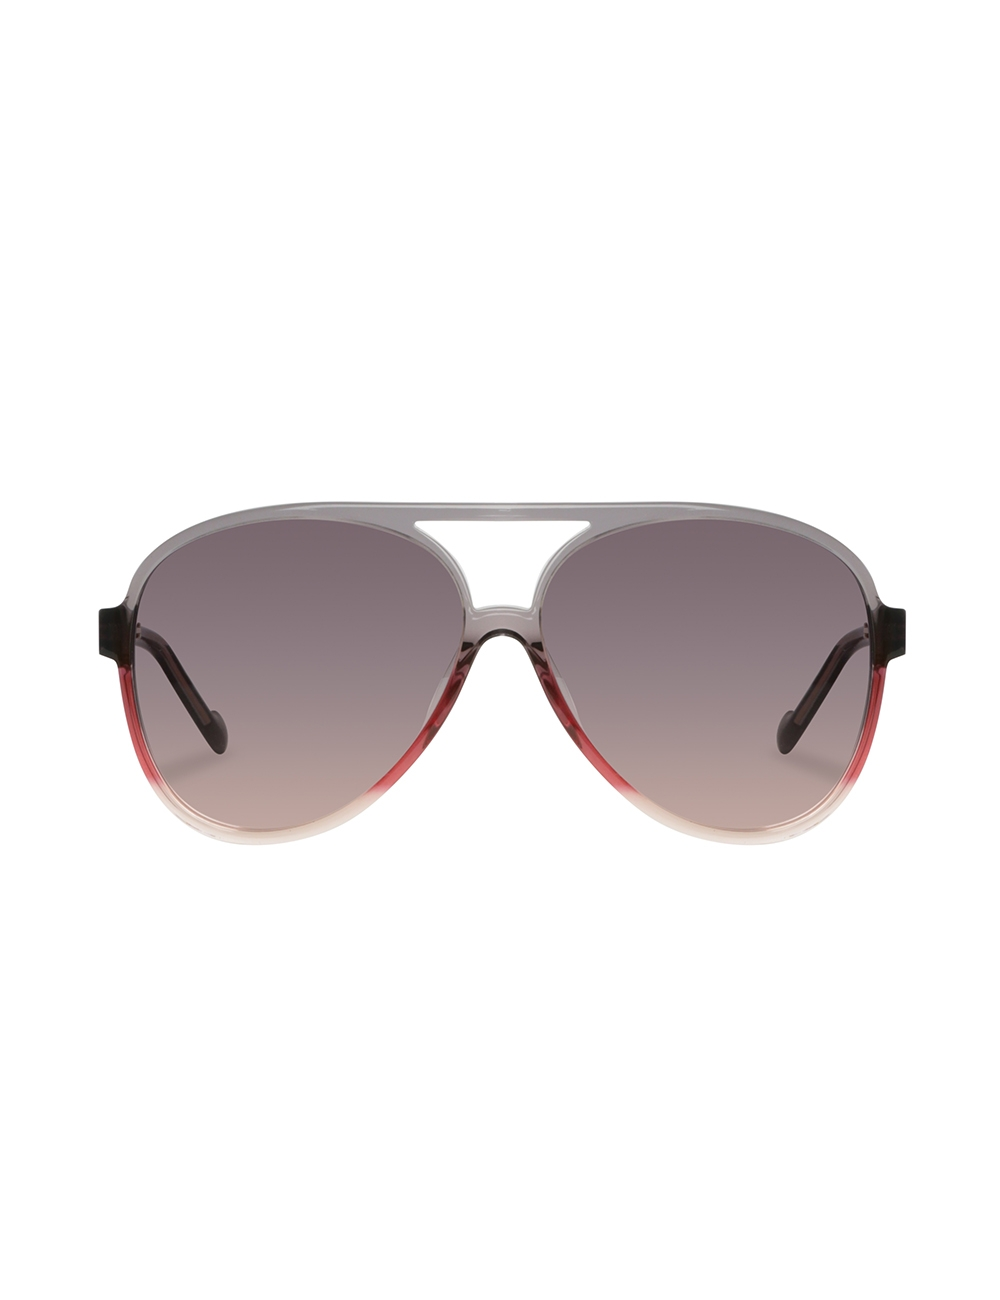 Shoreline Sunglasses